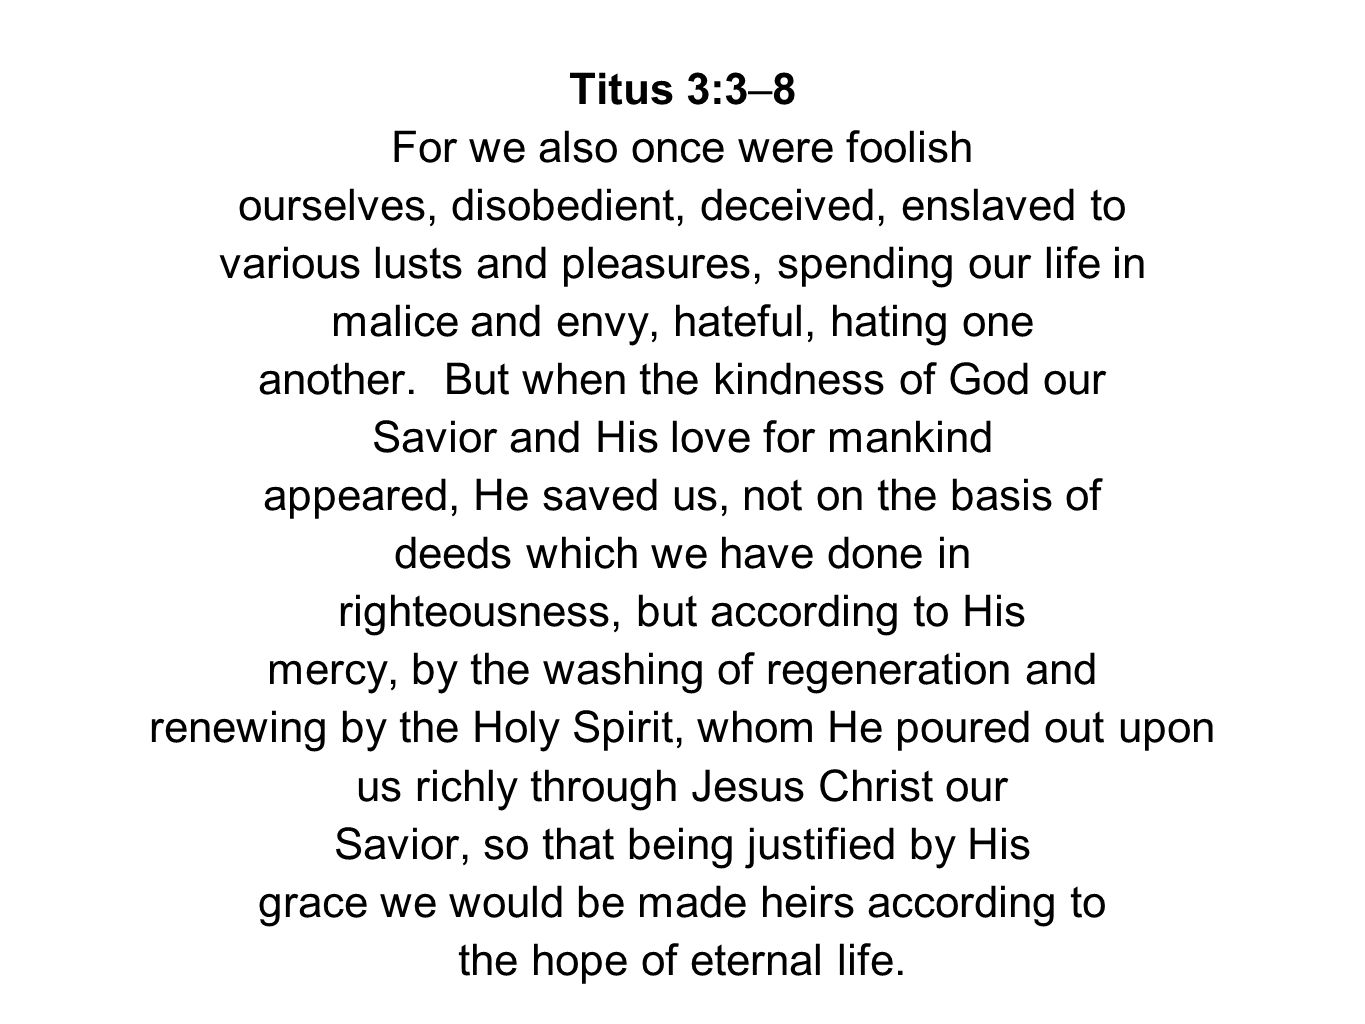 Titus 3:3–8 For we also once were foolish ourselves, disobedient, deceived, enslaved to various lusts and pleasures, spending our life in malice and envy, hateful, hating one another.